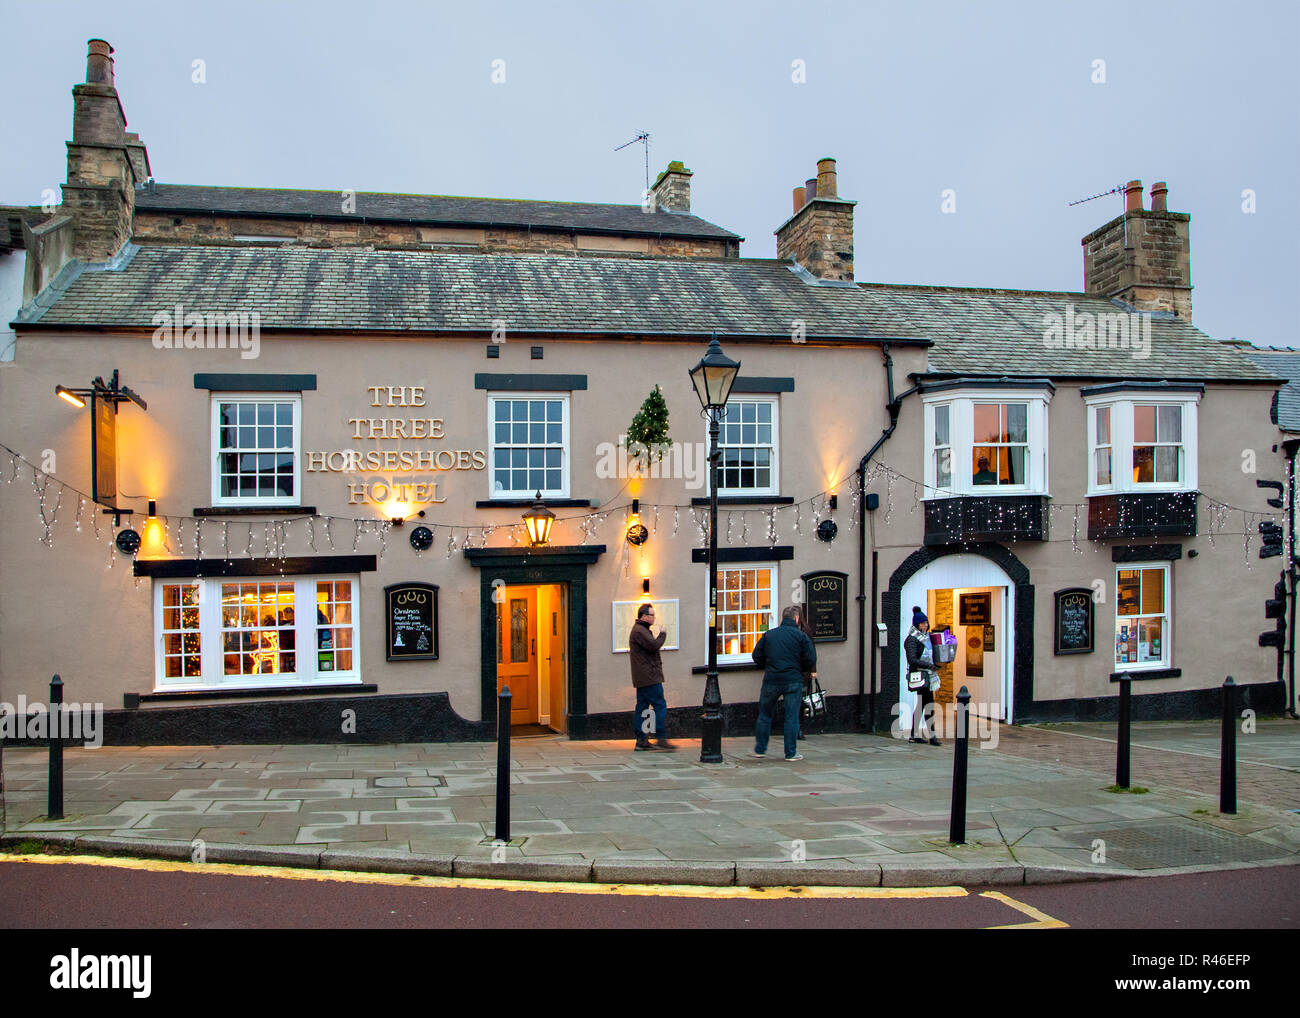 Evening view of the Three horseshoes hotel pub lit by floodlights in the County Durham market town of Barnard Castle North  Pennines England UK - Stock Image